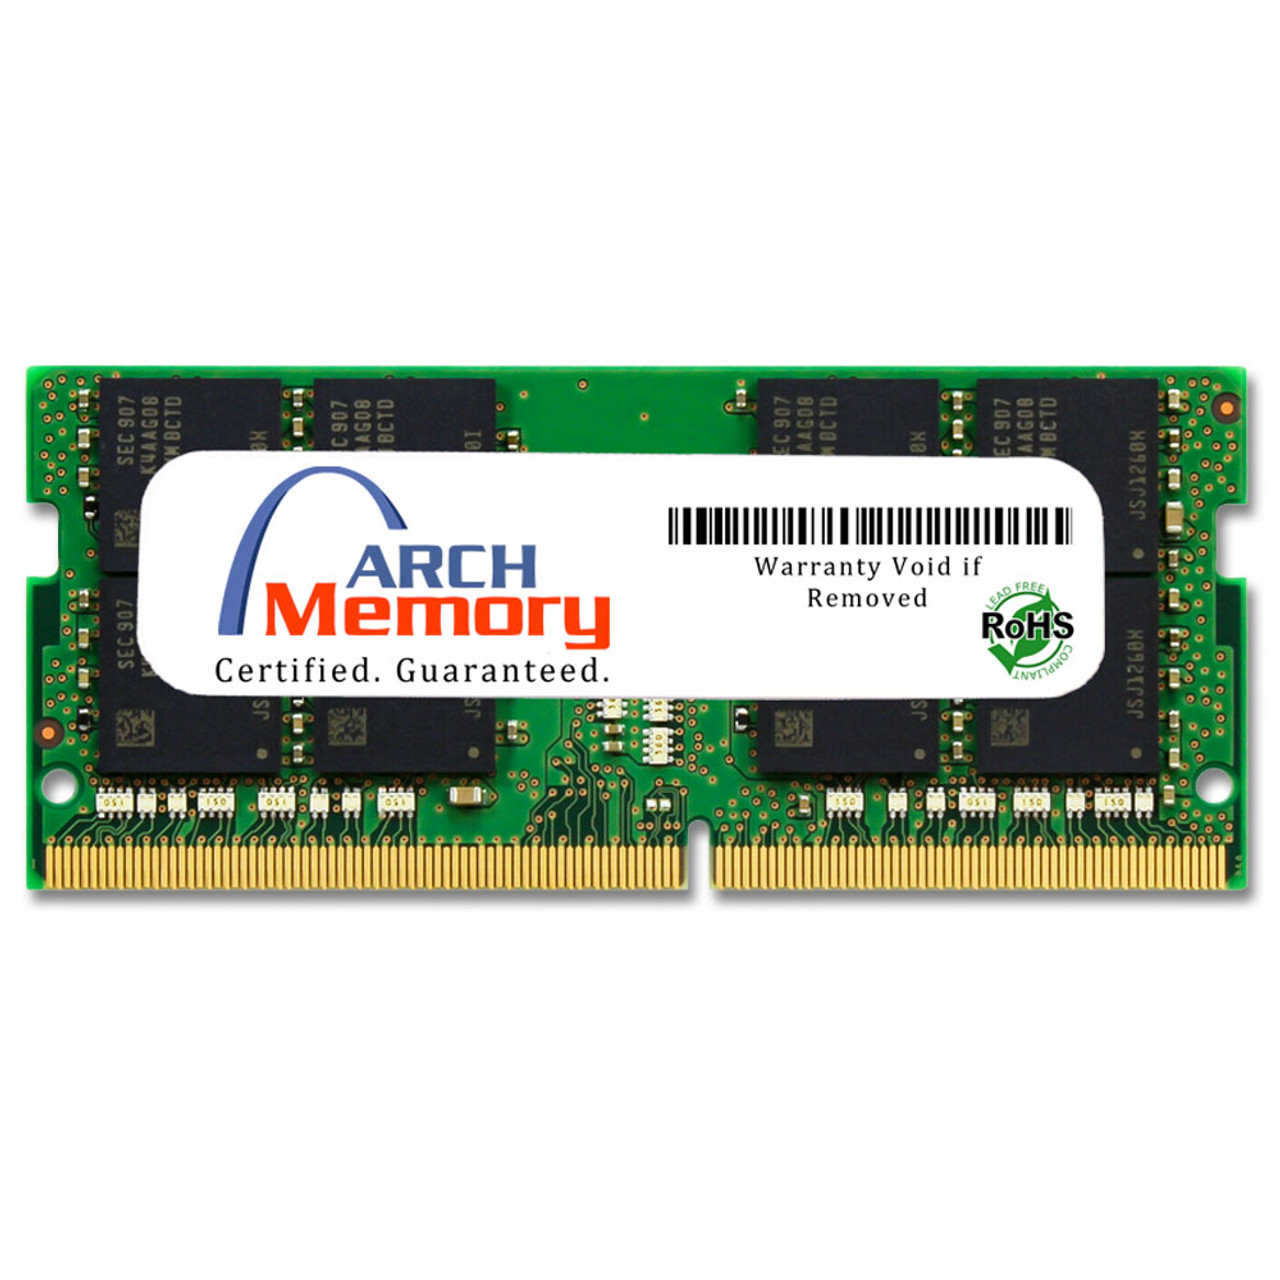 16GB 260-Pin DDR4-2666 PC4-21300 Sodimm RAM